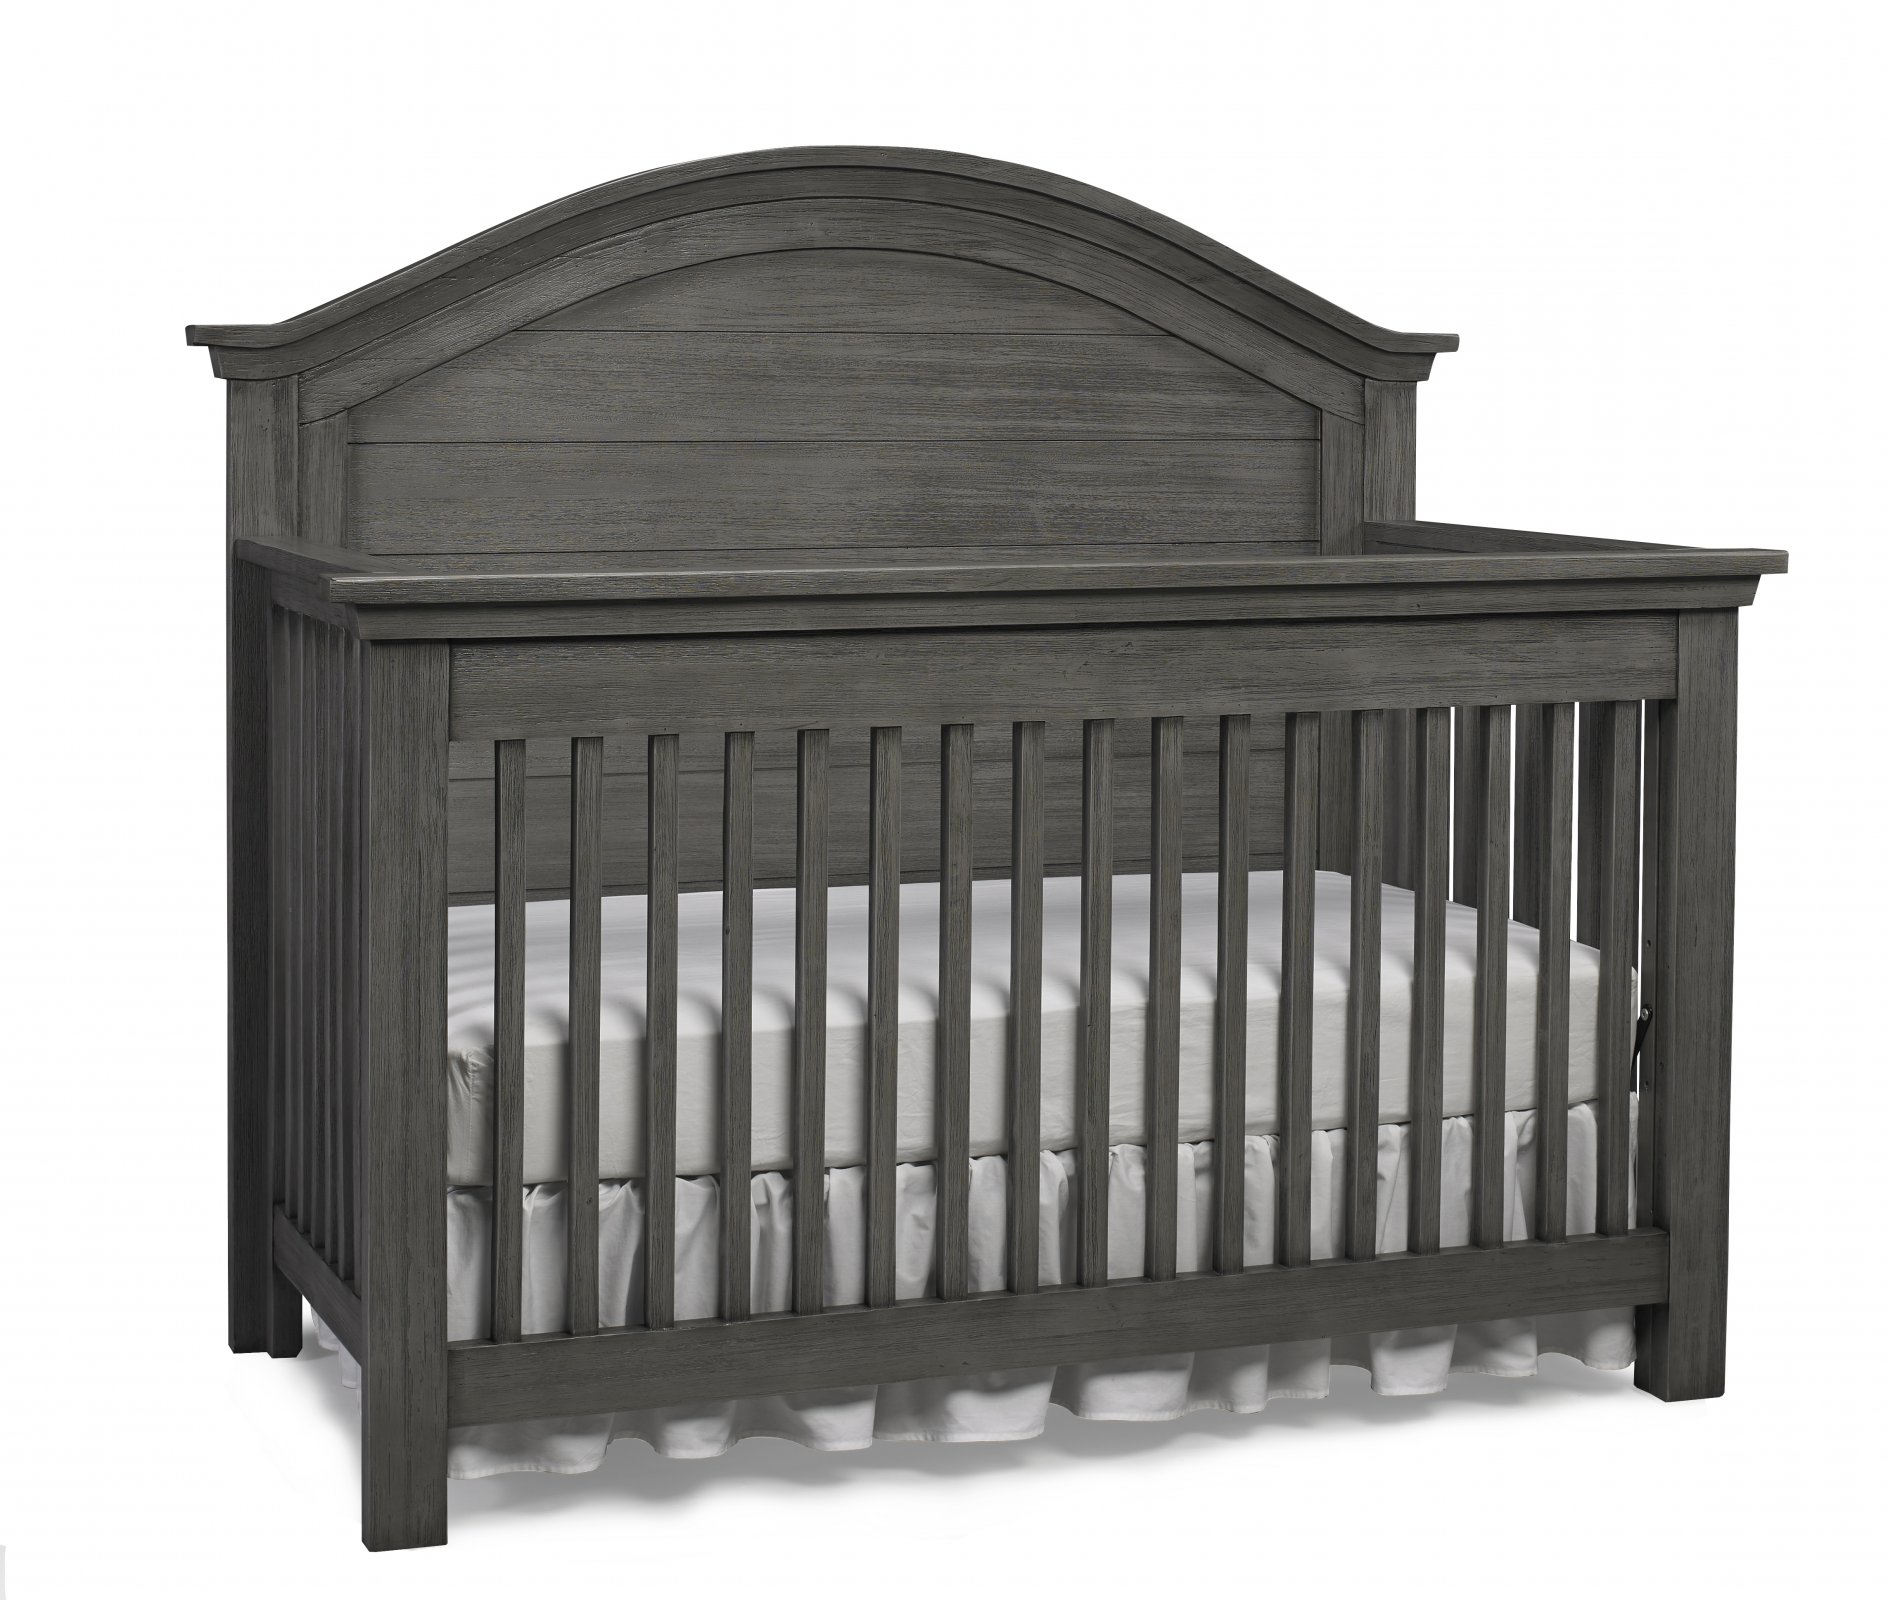 Dolce Babi | Lucca | Curved Top Convertible Crib